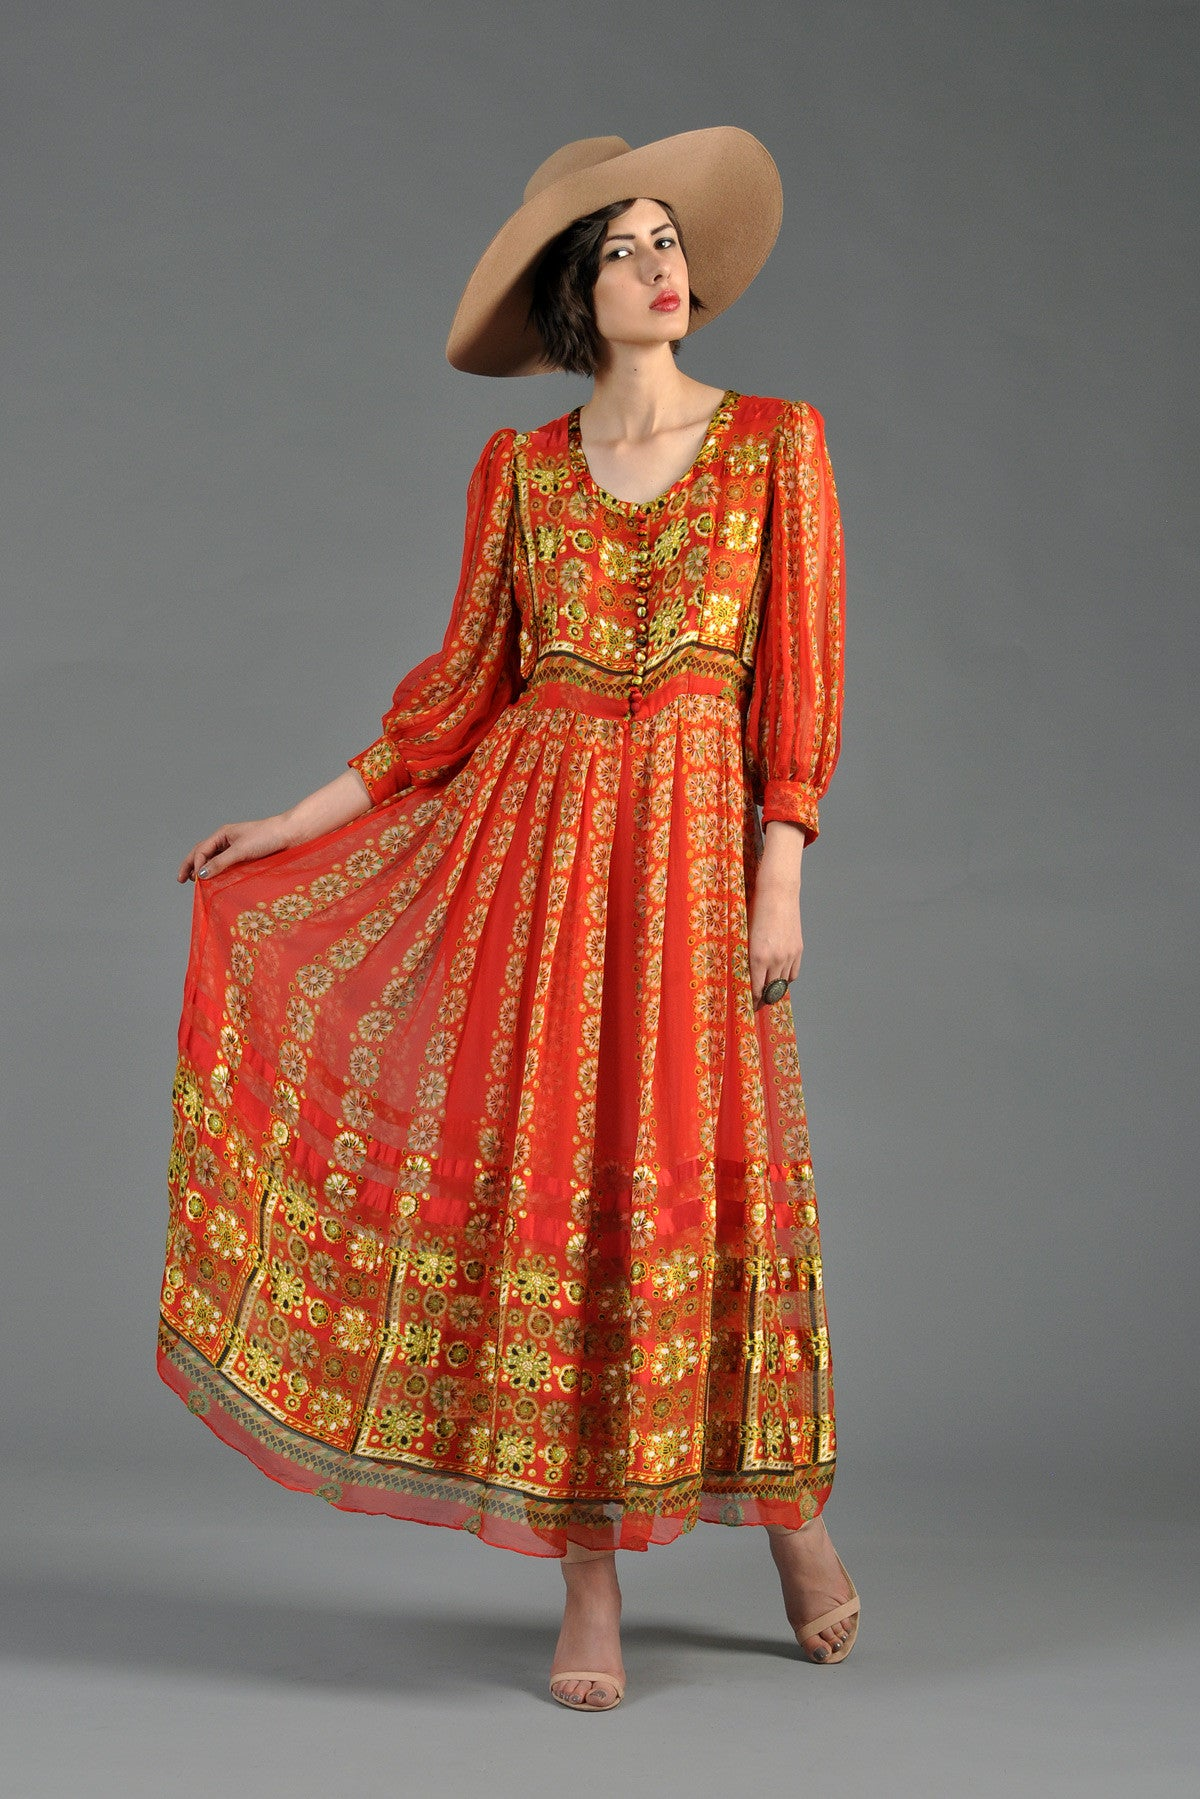 1970s Indian Silk Maxi Dress w/Blouson Sleeves | BUSTOWN ...